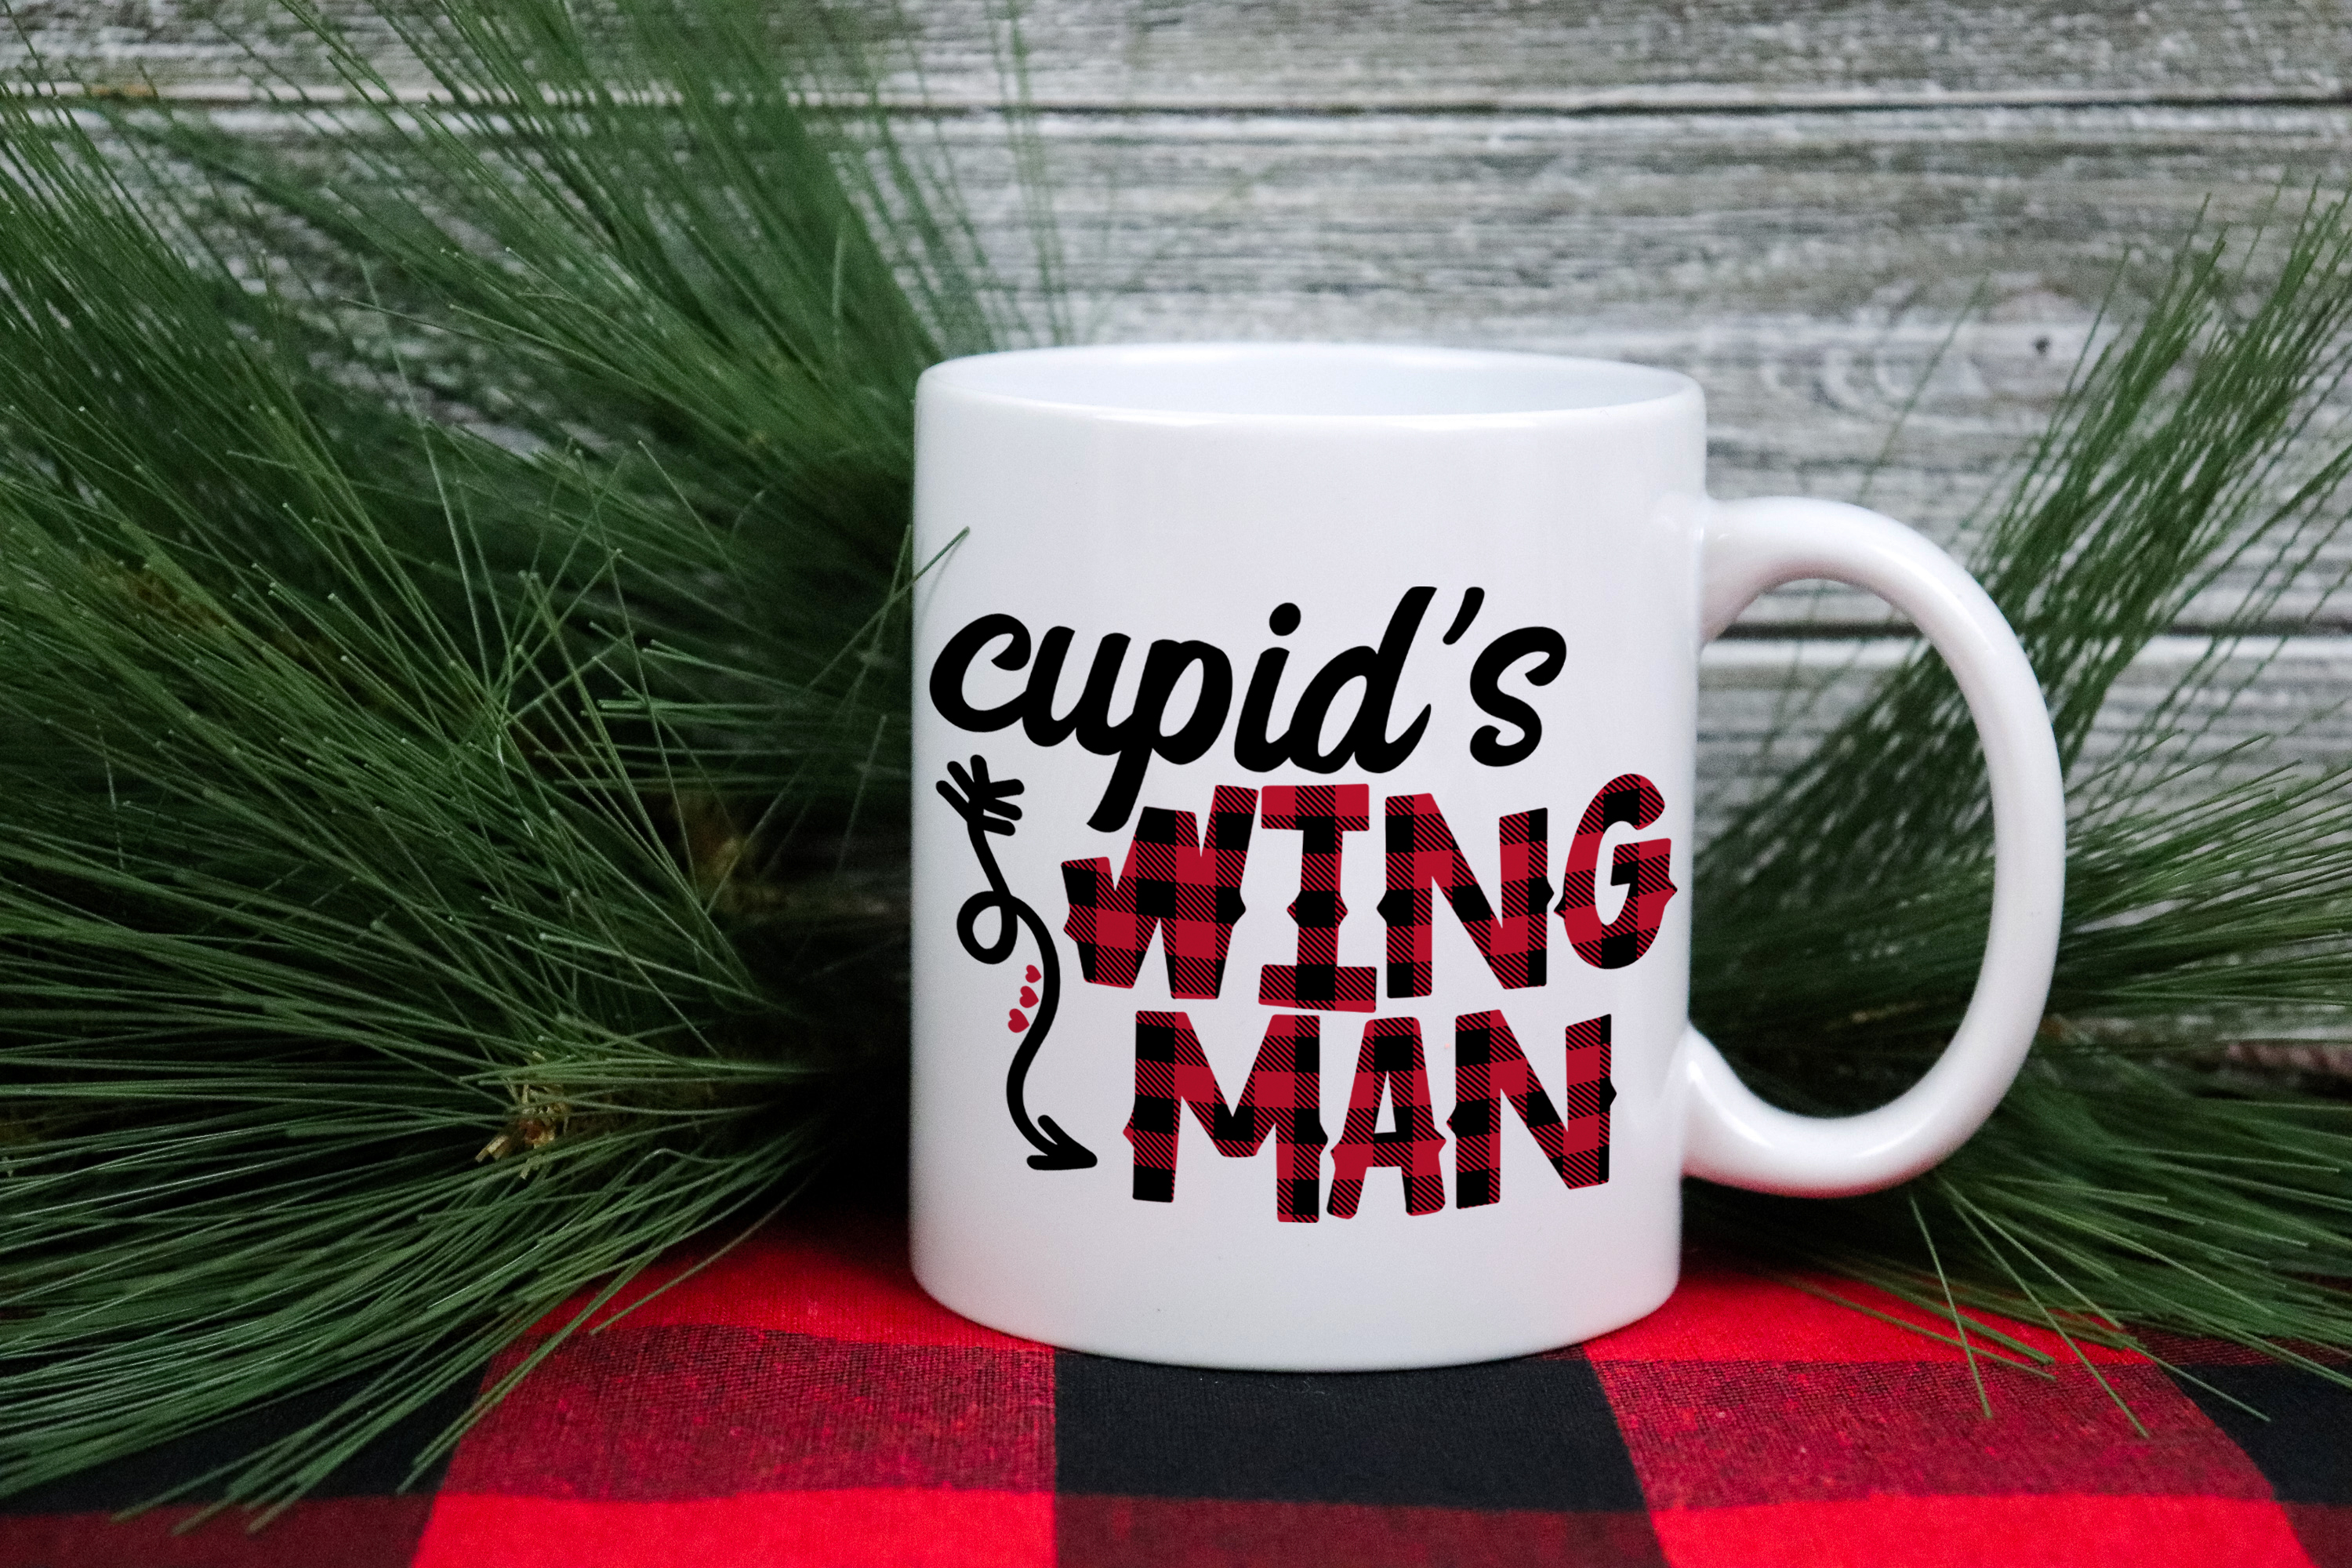 Cupid's Wing Man - A Buffalo Plaid Valentine's Day SVG example image 3